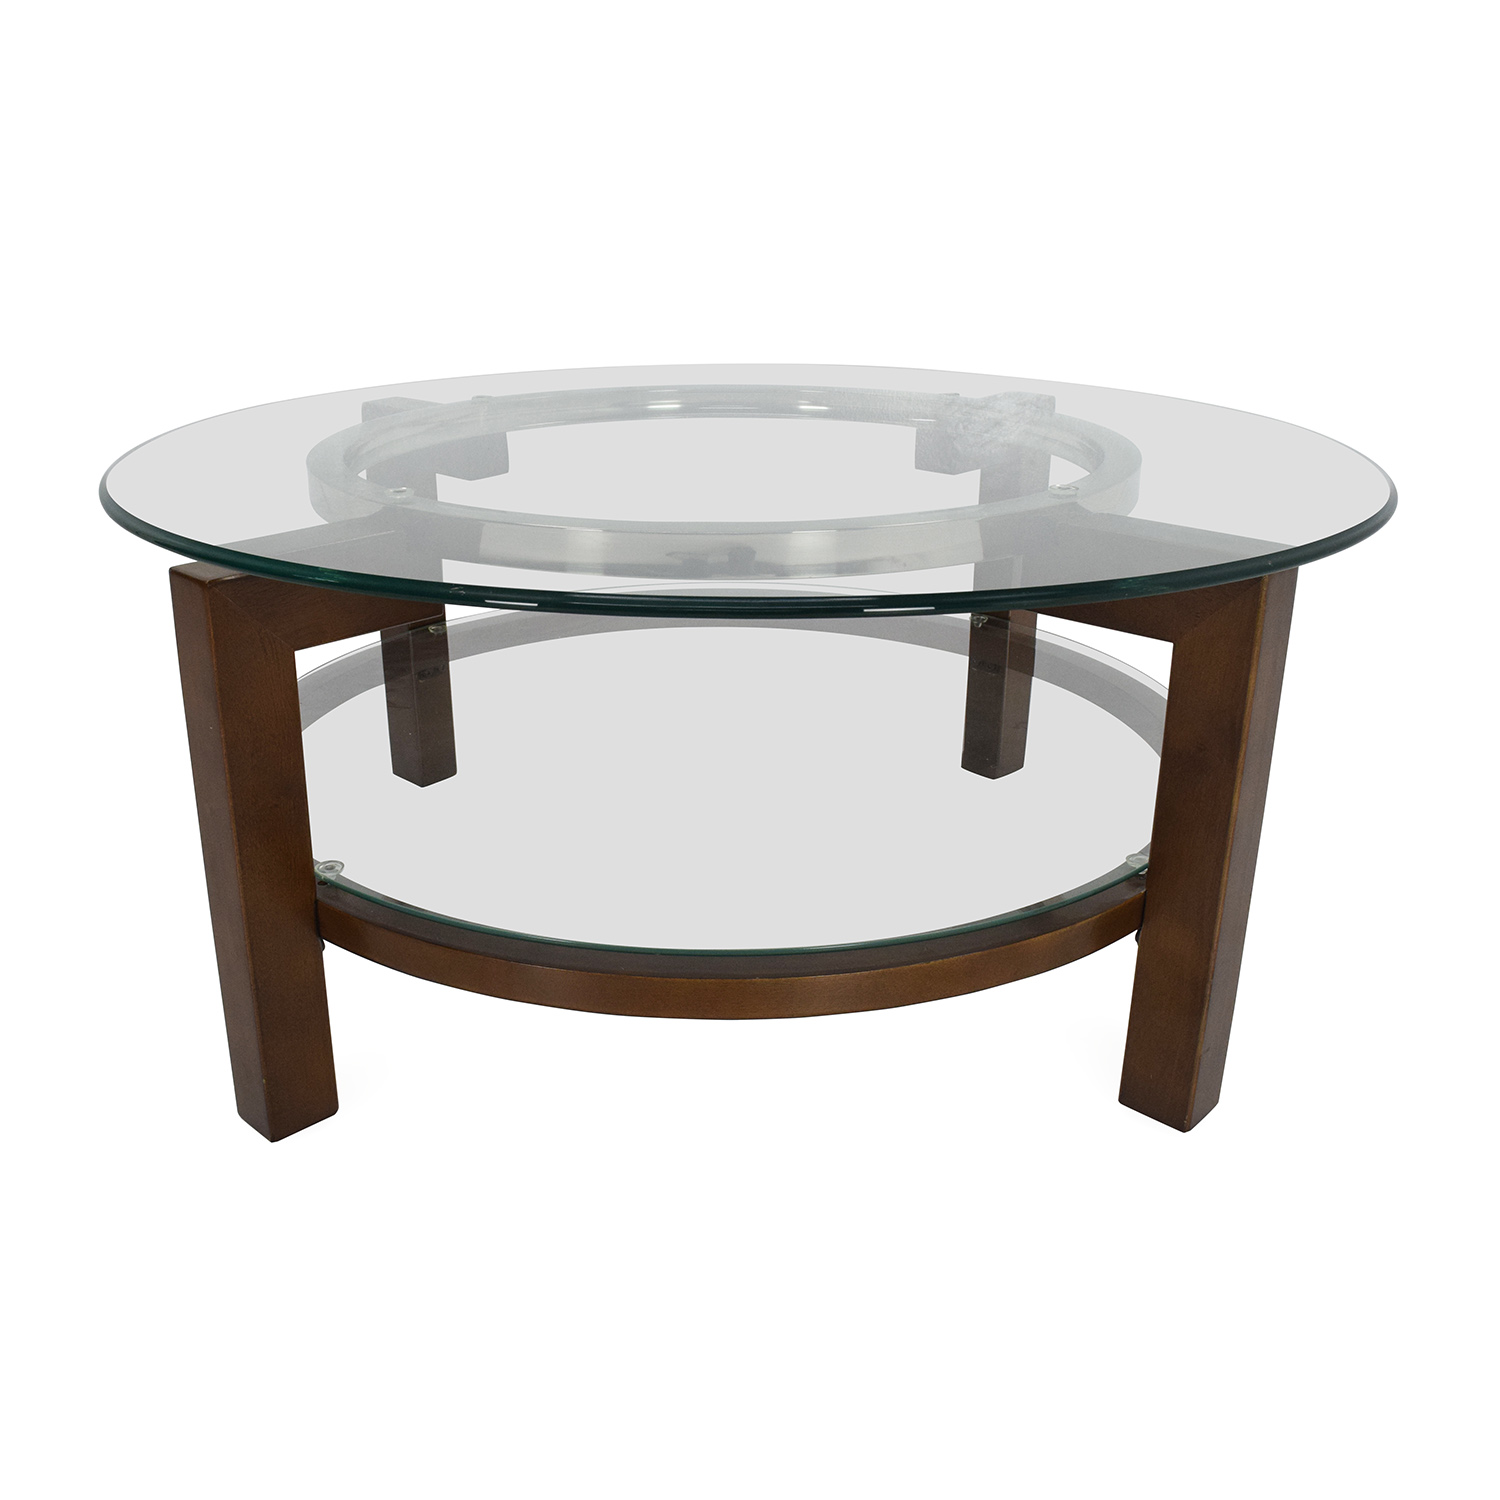 80 Off Cb2 Cb2 Glass Top Coffee Table Tables